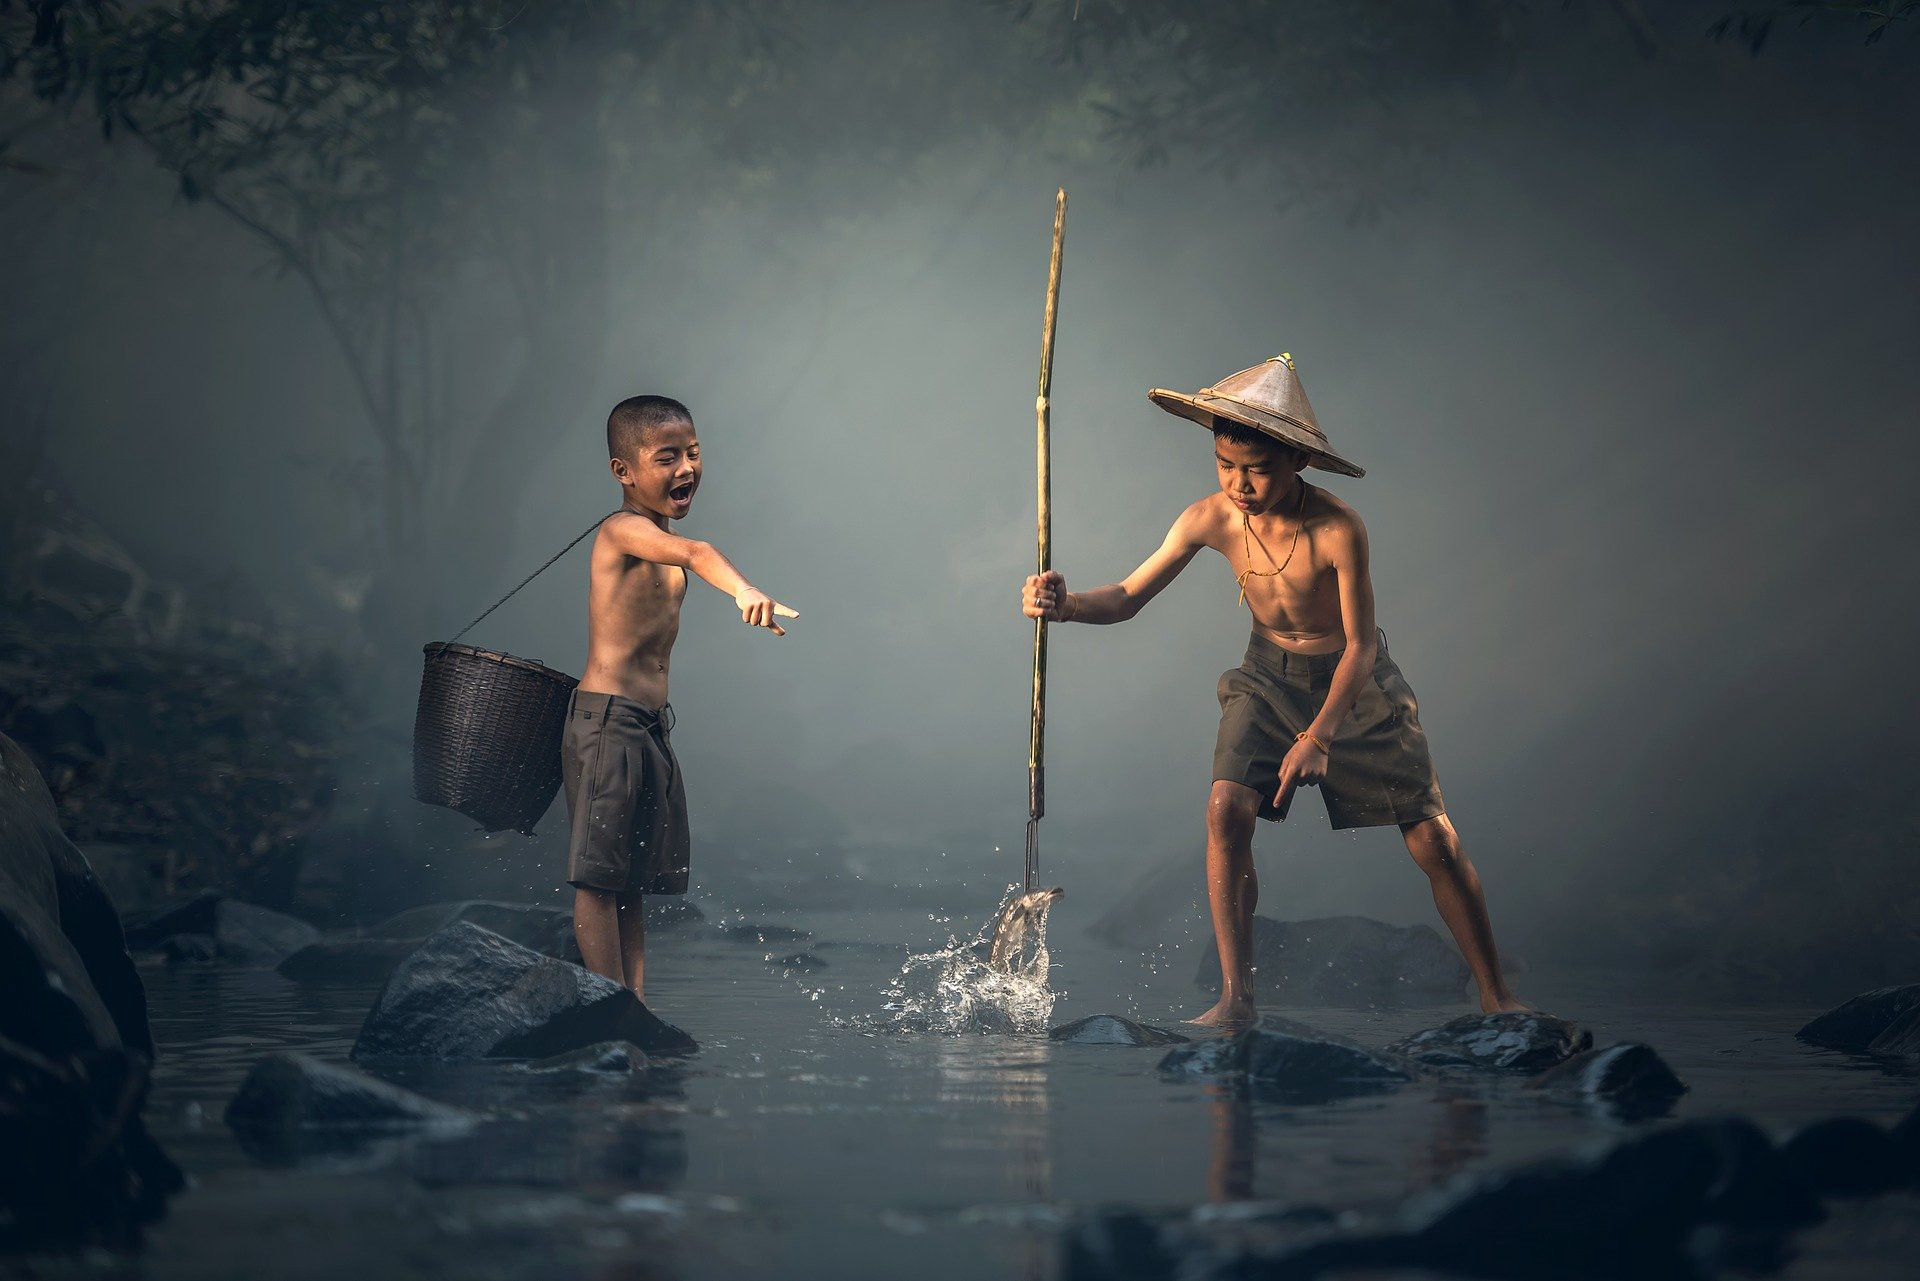 Two Asian children trying to catch fish